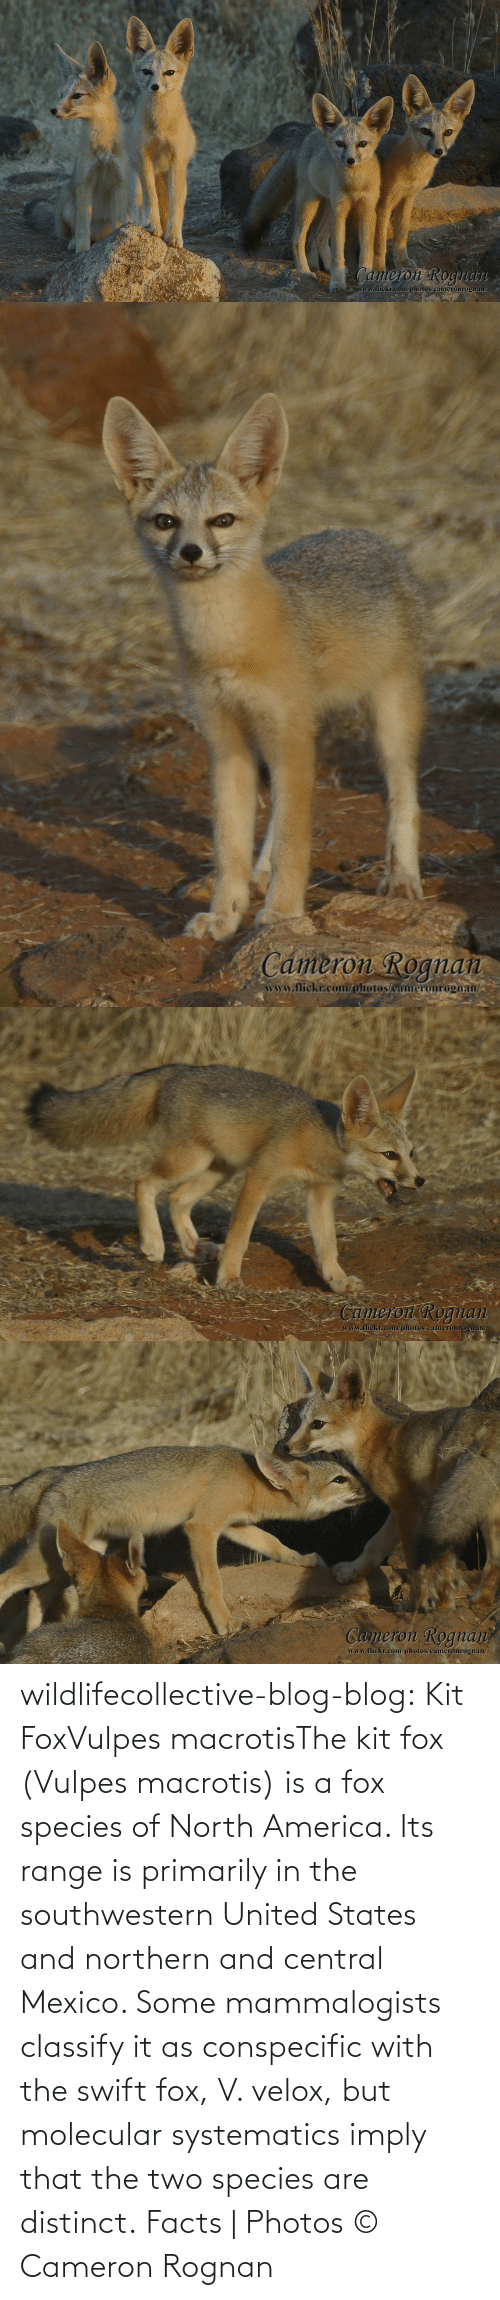 swift: wildlifecollective-blog-blog:  Kit FoxVulpes macrotisThe kit fox (Vulpes macrotis) is a fox species of North America. Its range is primarily in the southwestern United States and northern and central Mexico. Some mammalogists classify it as conspecific with the swift fox, V. velox, but molecular systematics imply that the two species are distinct. Facts | Photos © Cameron Rognan